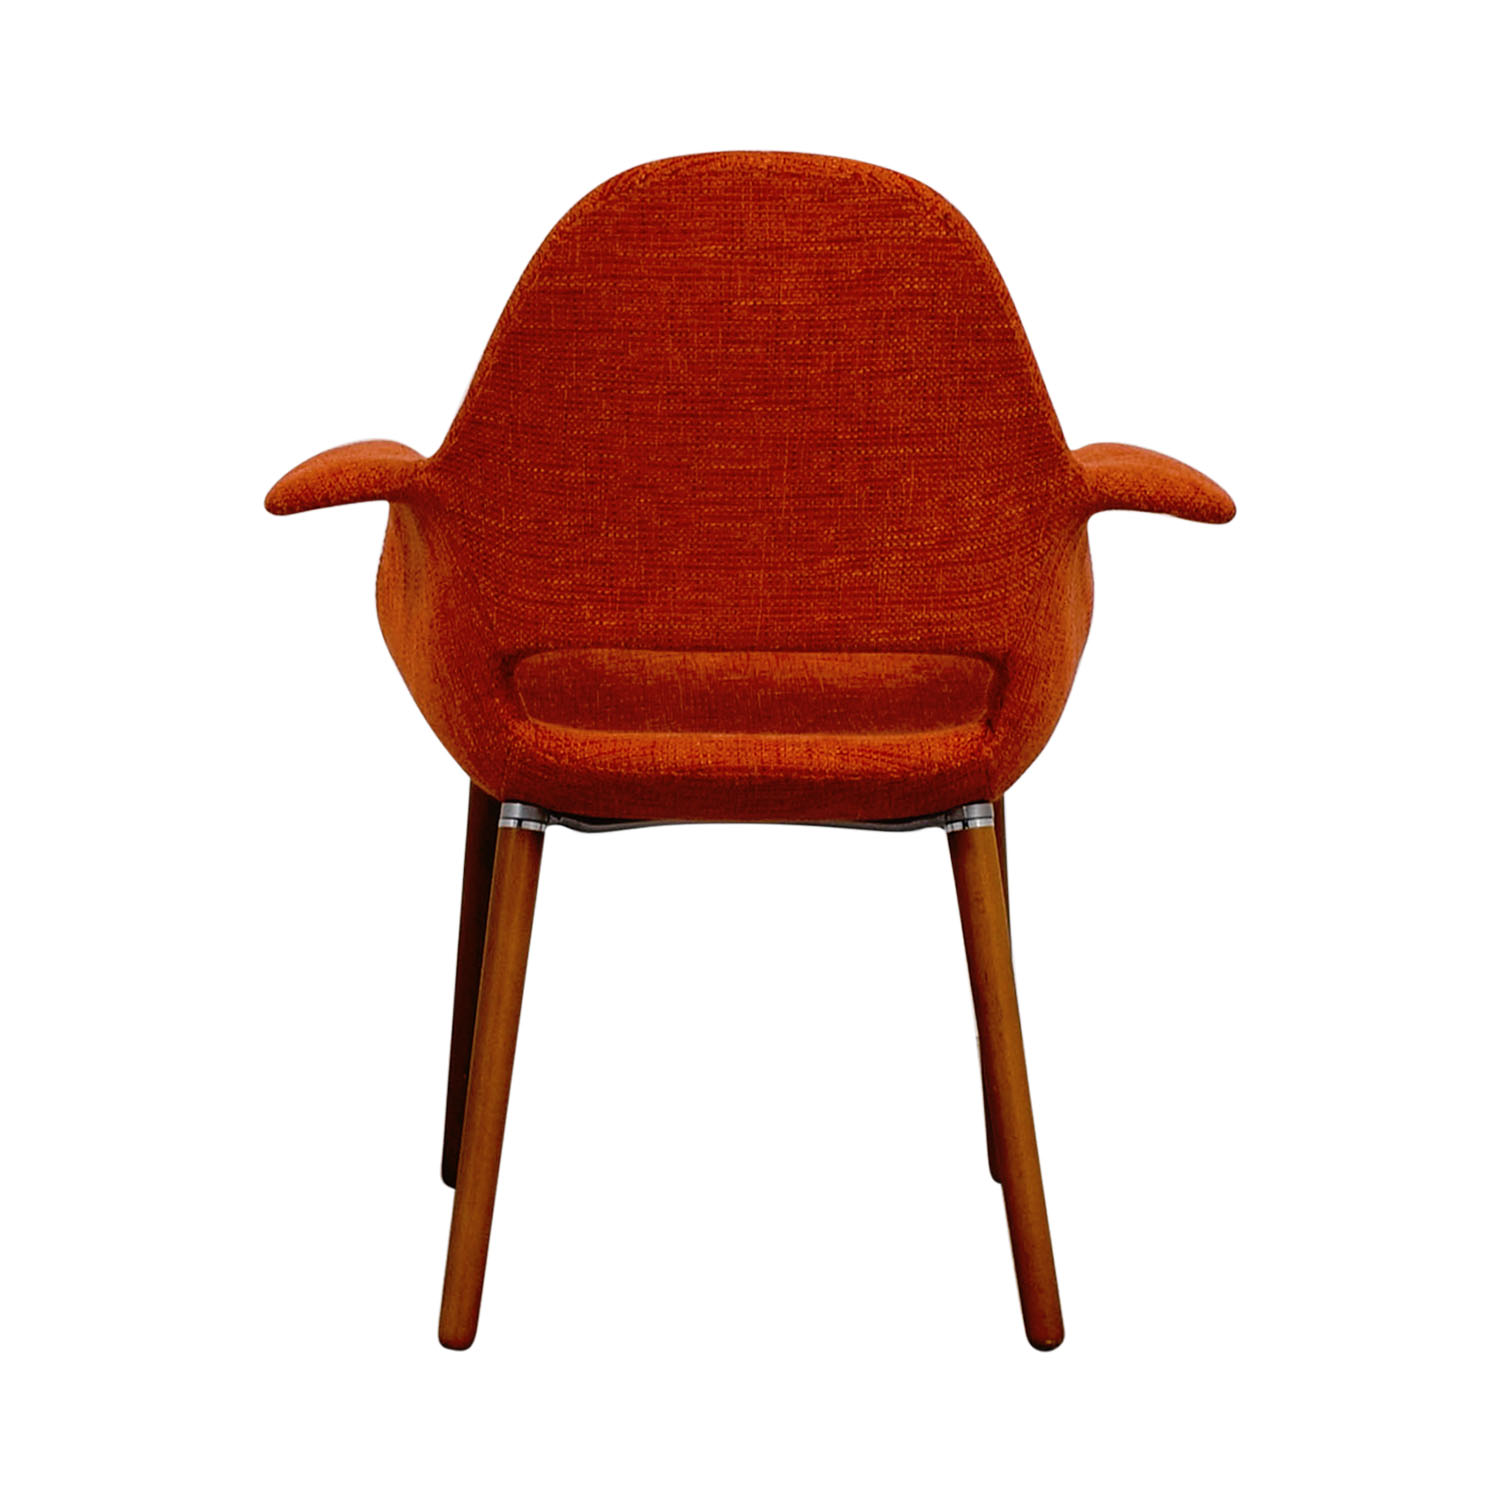 Artrio Artrio Orange Upholstered Armchair nyc